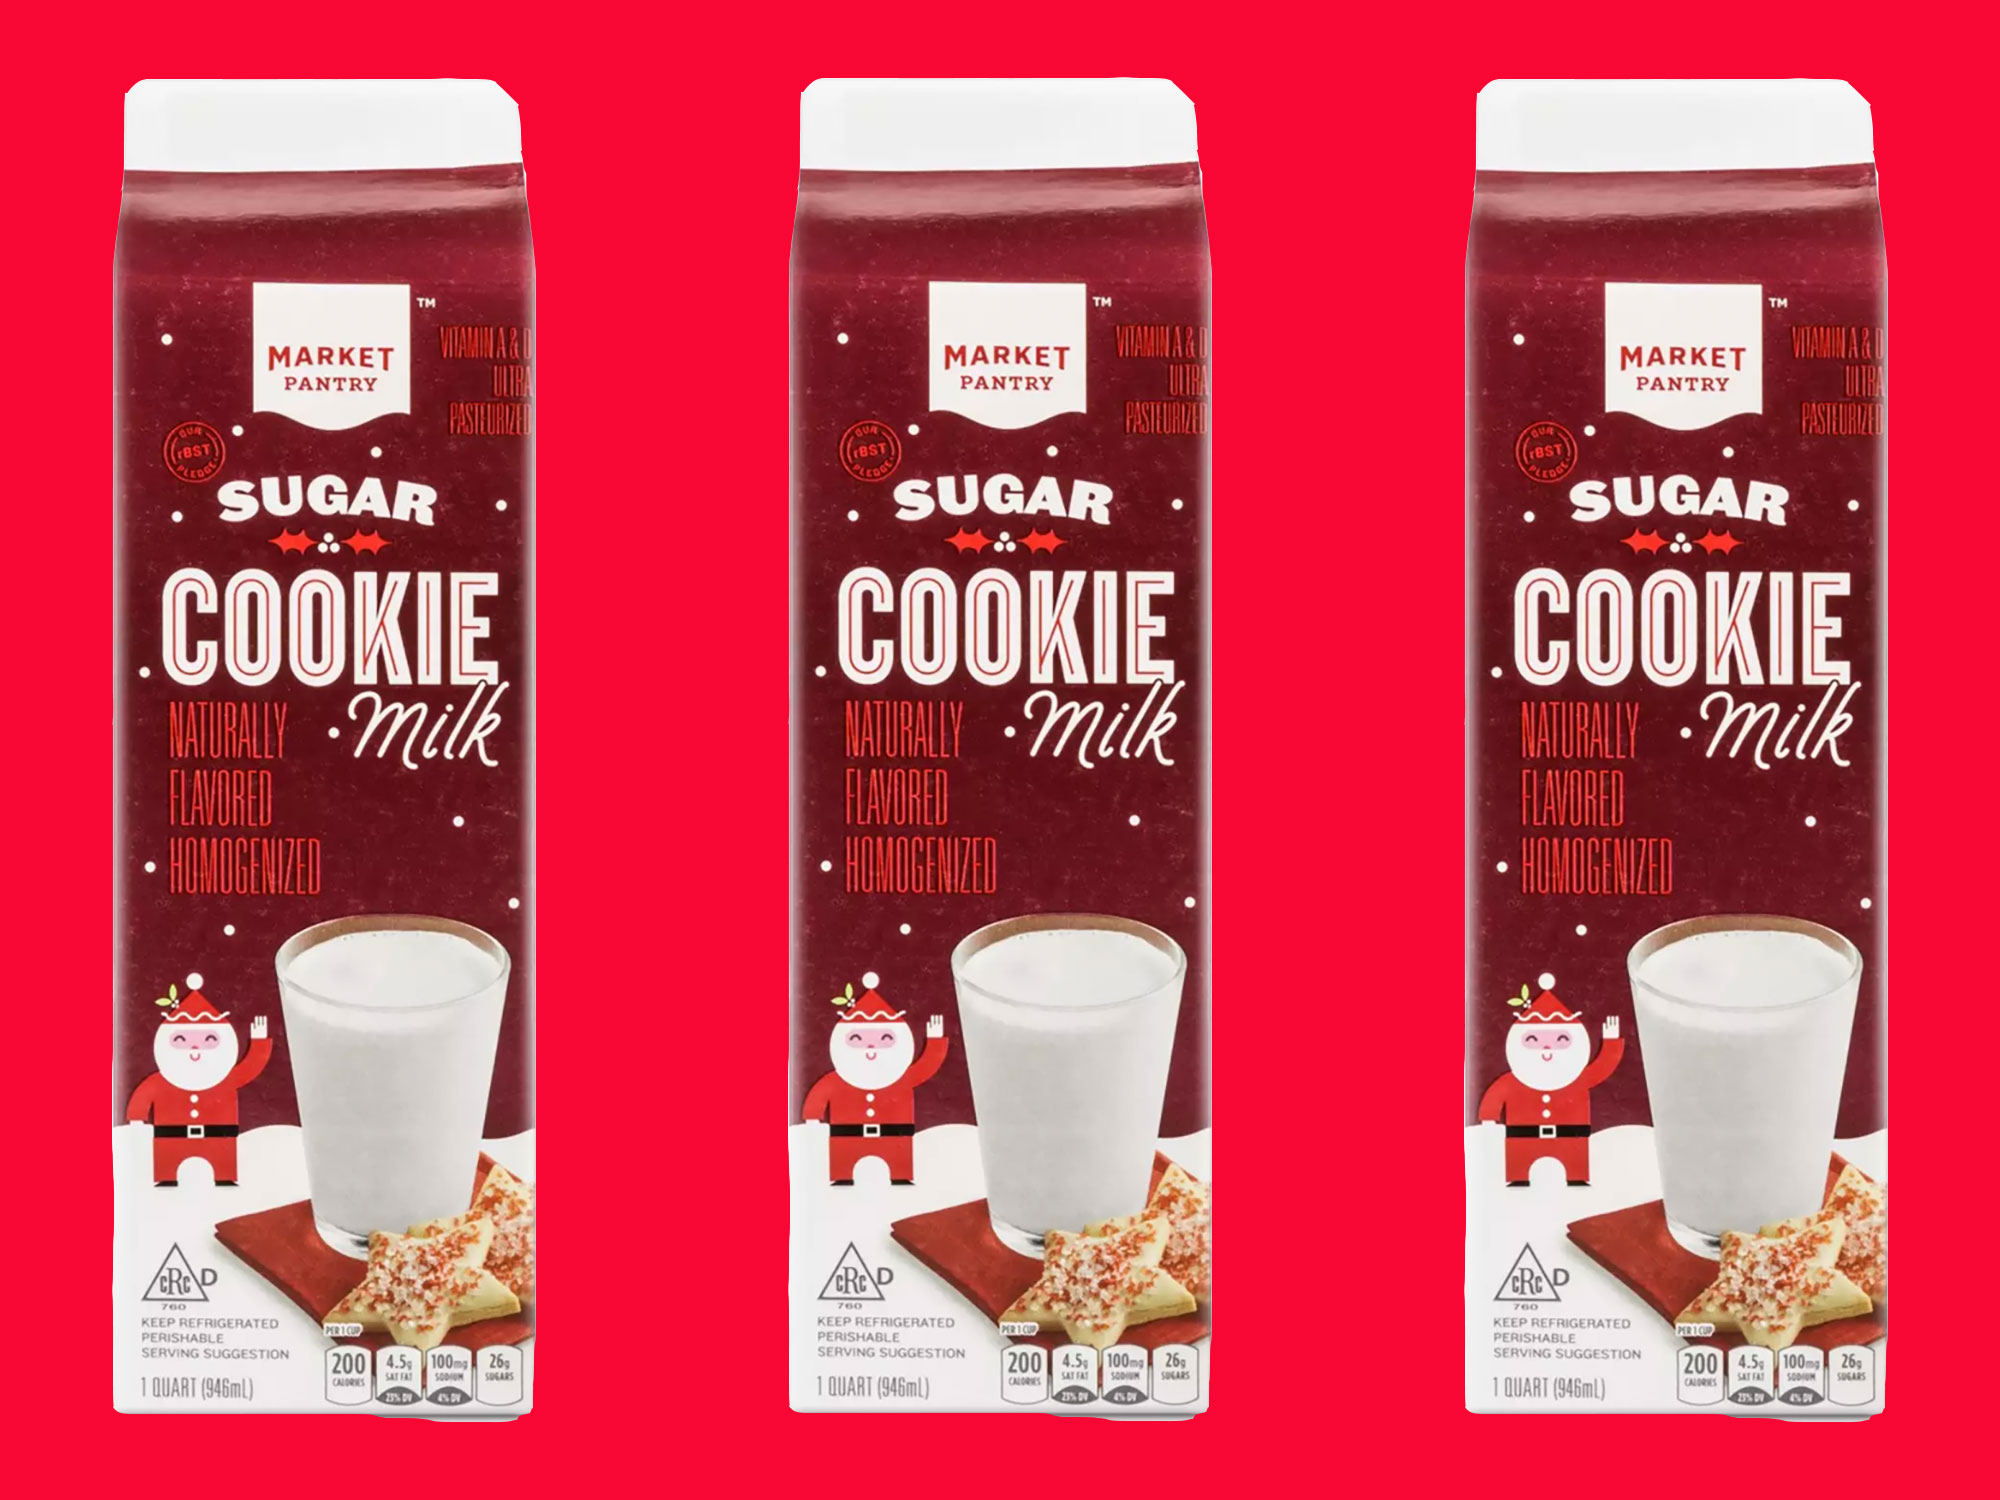 'Sugar Cookie Milk' Is Available at Target